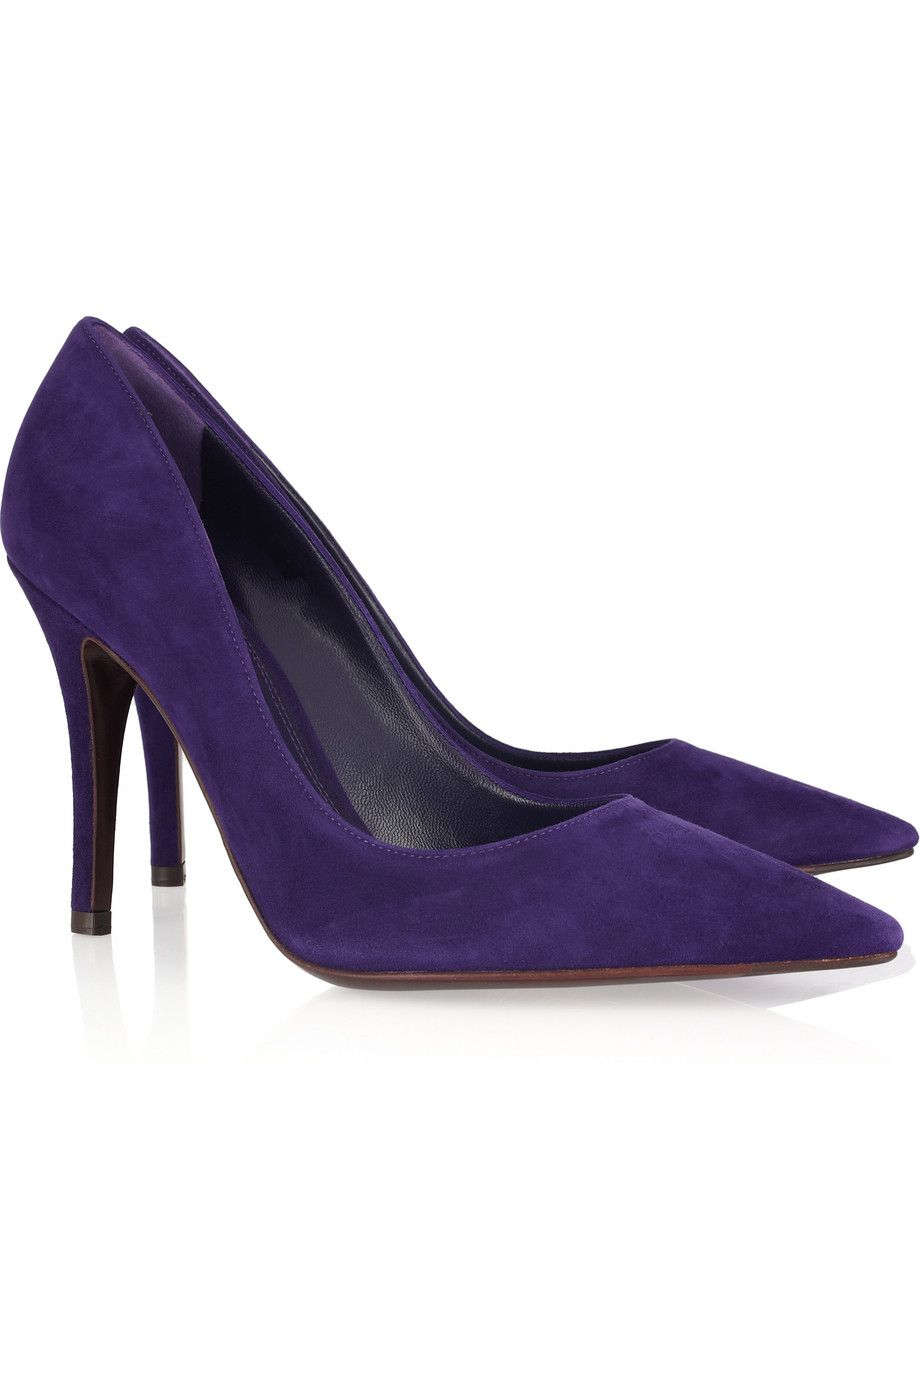 outlet extremely Ralph Lauren Suede Pointed-Toe Pumps outlet Manchester for sale discount sale C7gxxA